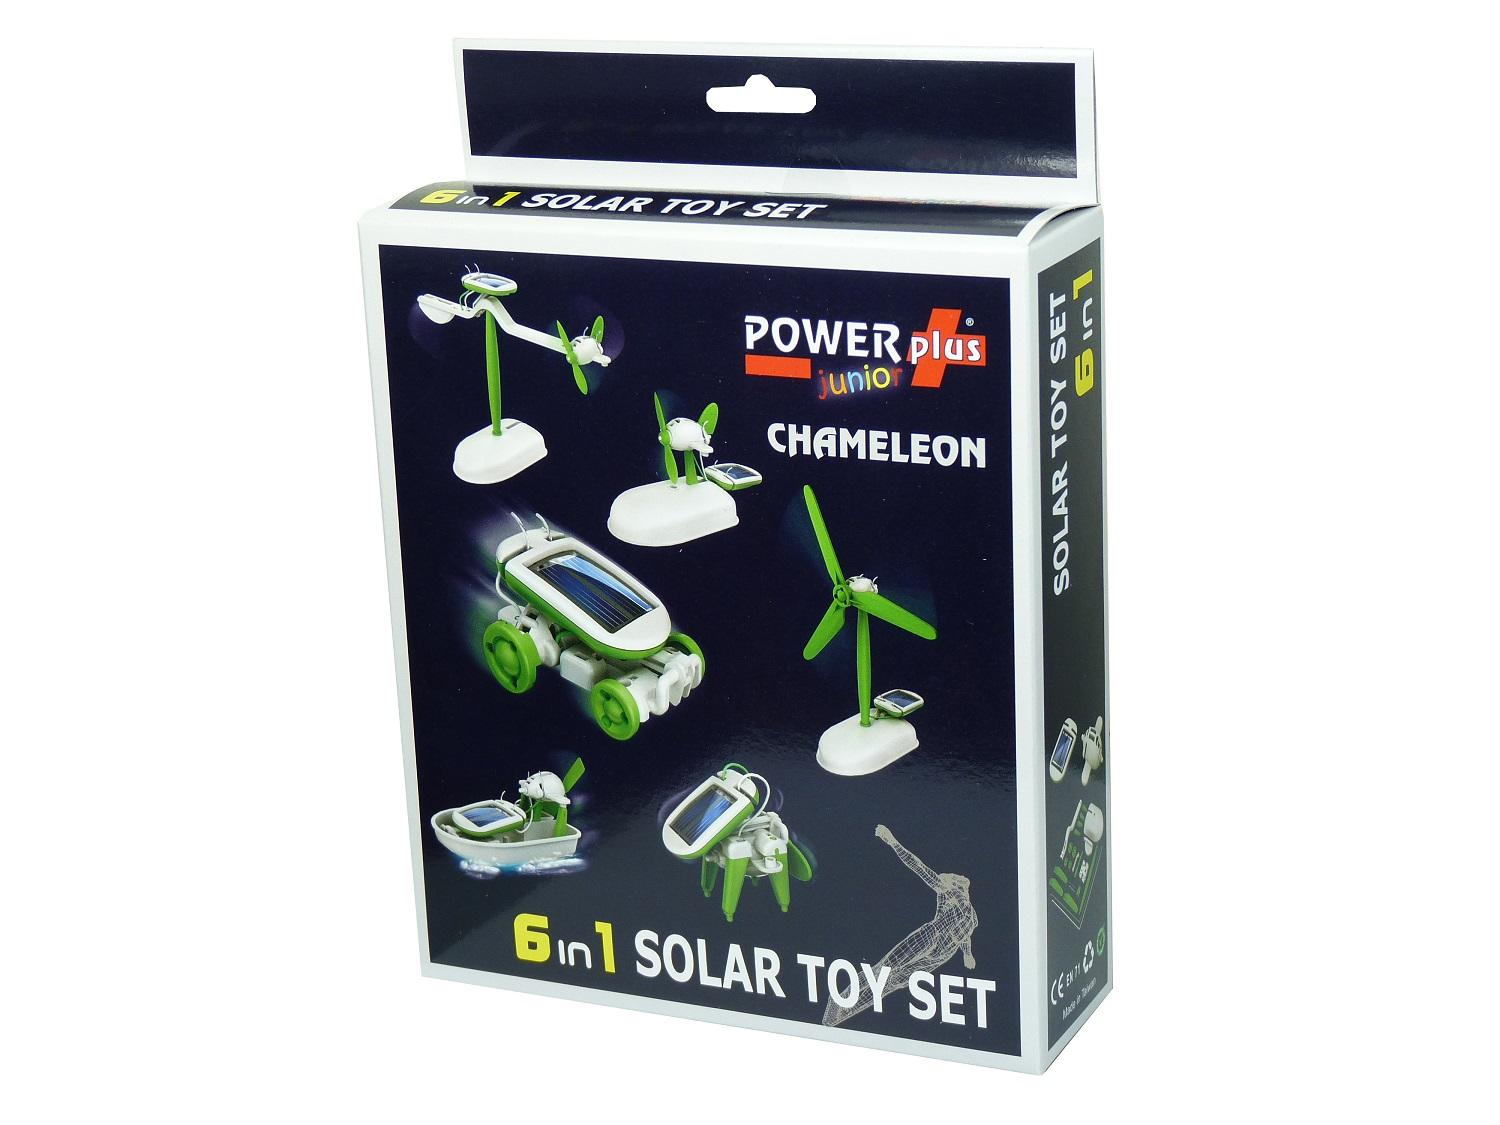 "POWERplus ""Junior"" Chameleon 6 in 1 Solar Toy Set"